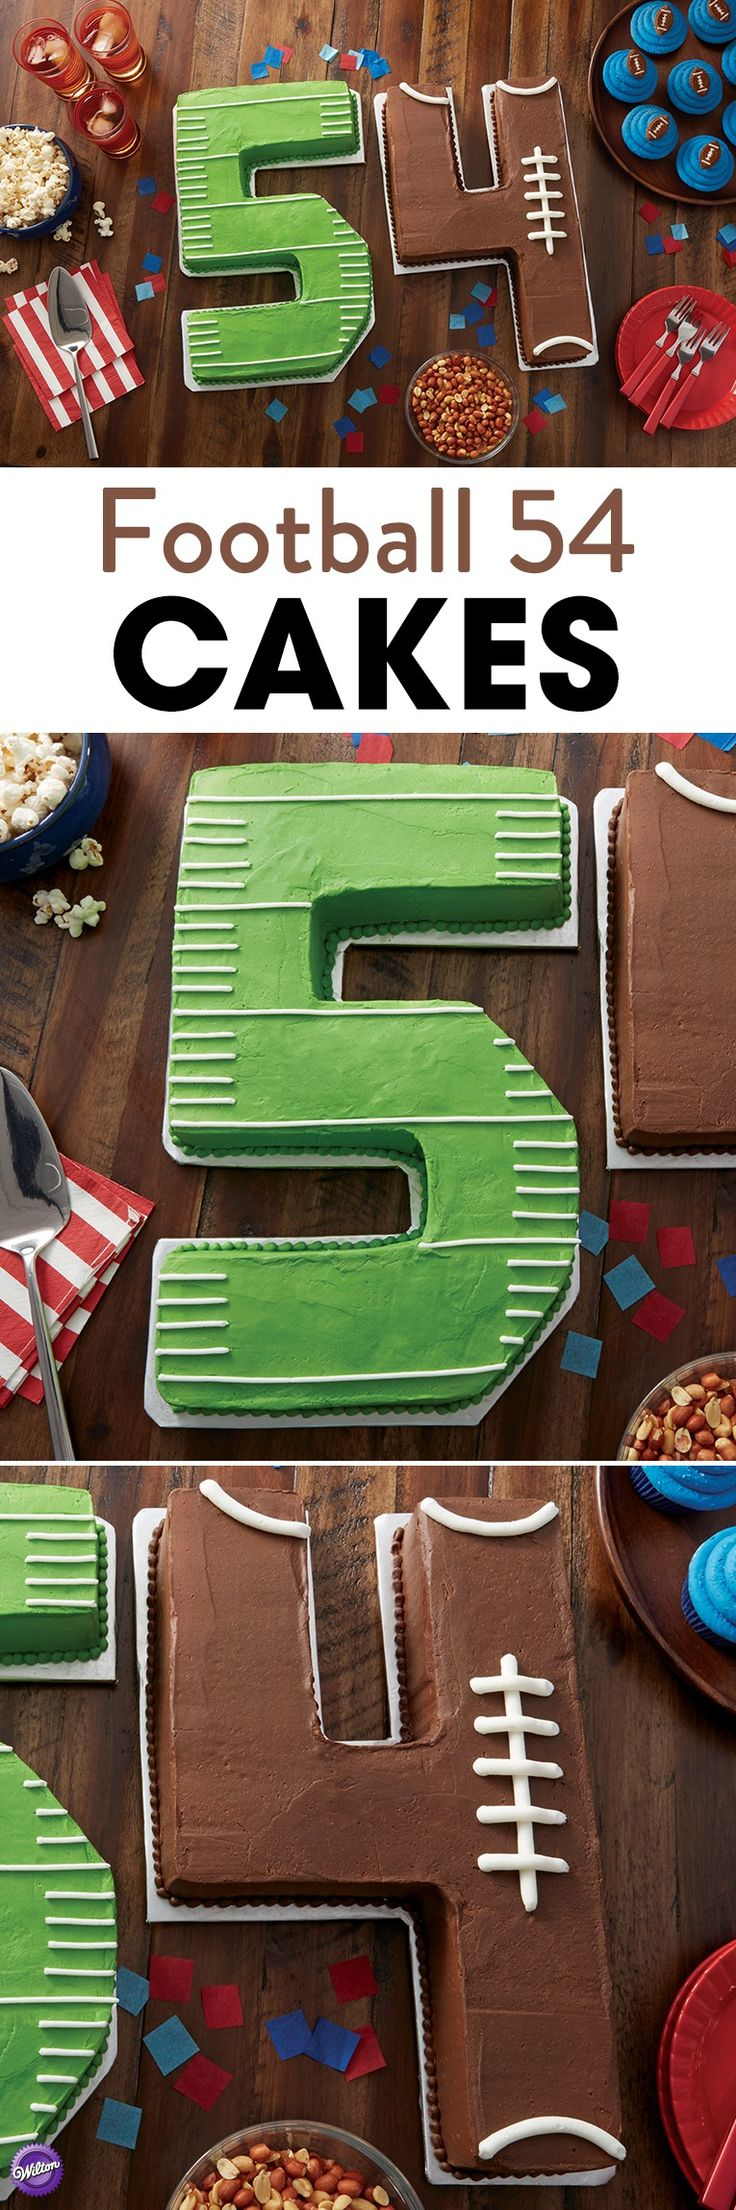 Football 54 Cakes - Win or lose, the favorite football player in your life will love these cakes featuring his jersey number. Any number easily becomes a cake using the Wilton Countless Celebrations Cake Pan Set, with special pan inserts and easy to follow illustrations. Best of all, any number can be easily decorated like the field and game ball, using icing tinted with the Wilton Color Right Performance Color System and the simple instructions below.